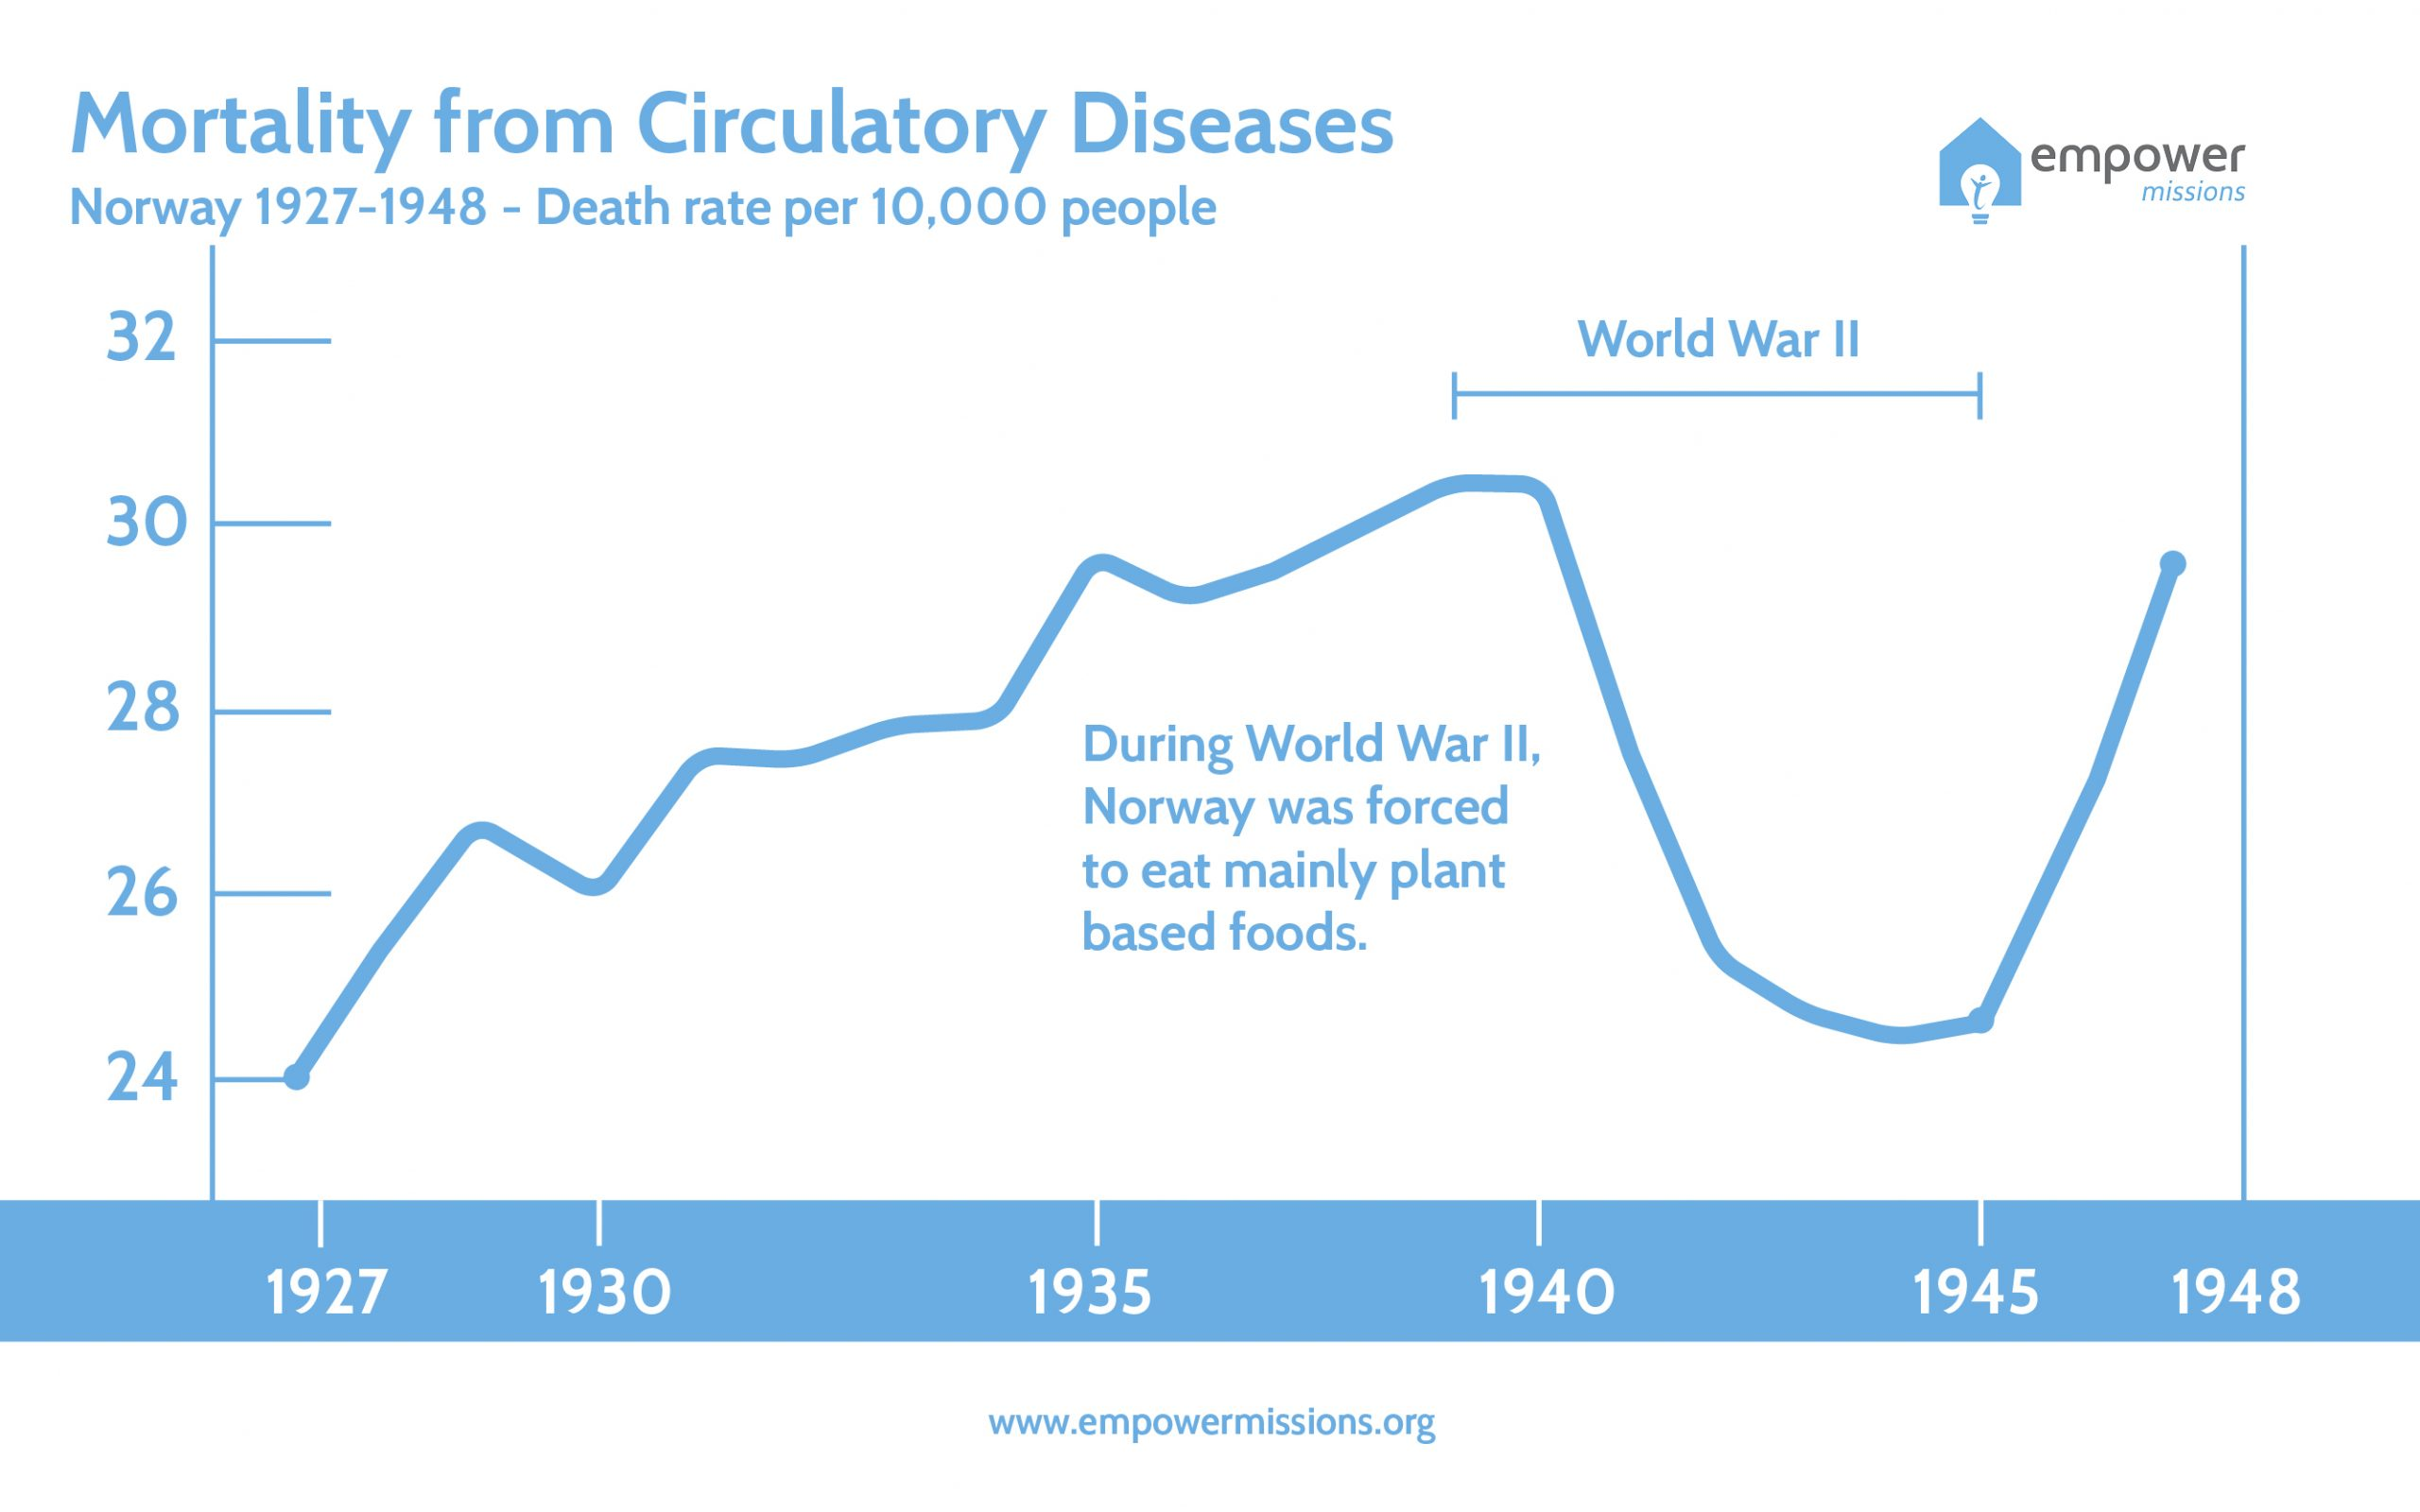 Norway, World War II - Mortality From Circulatory Diseases